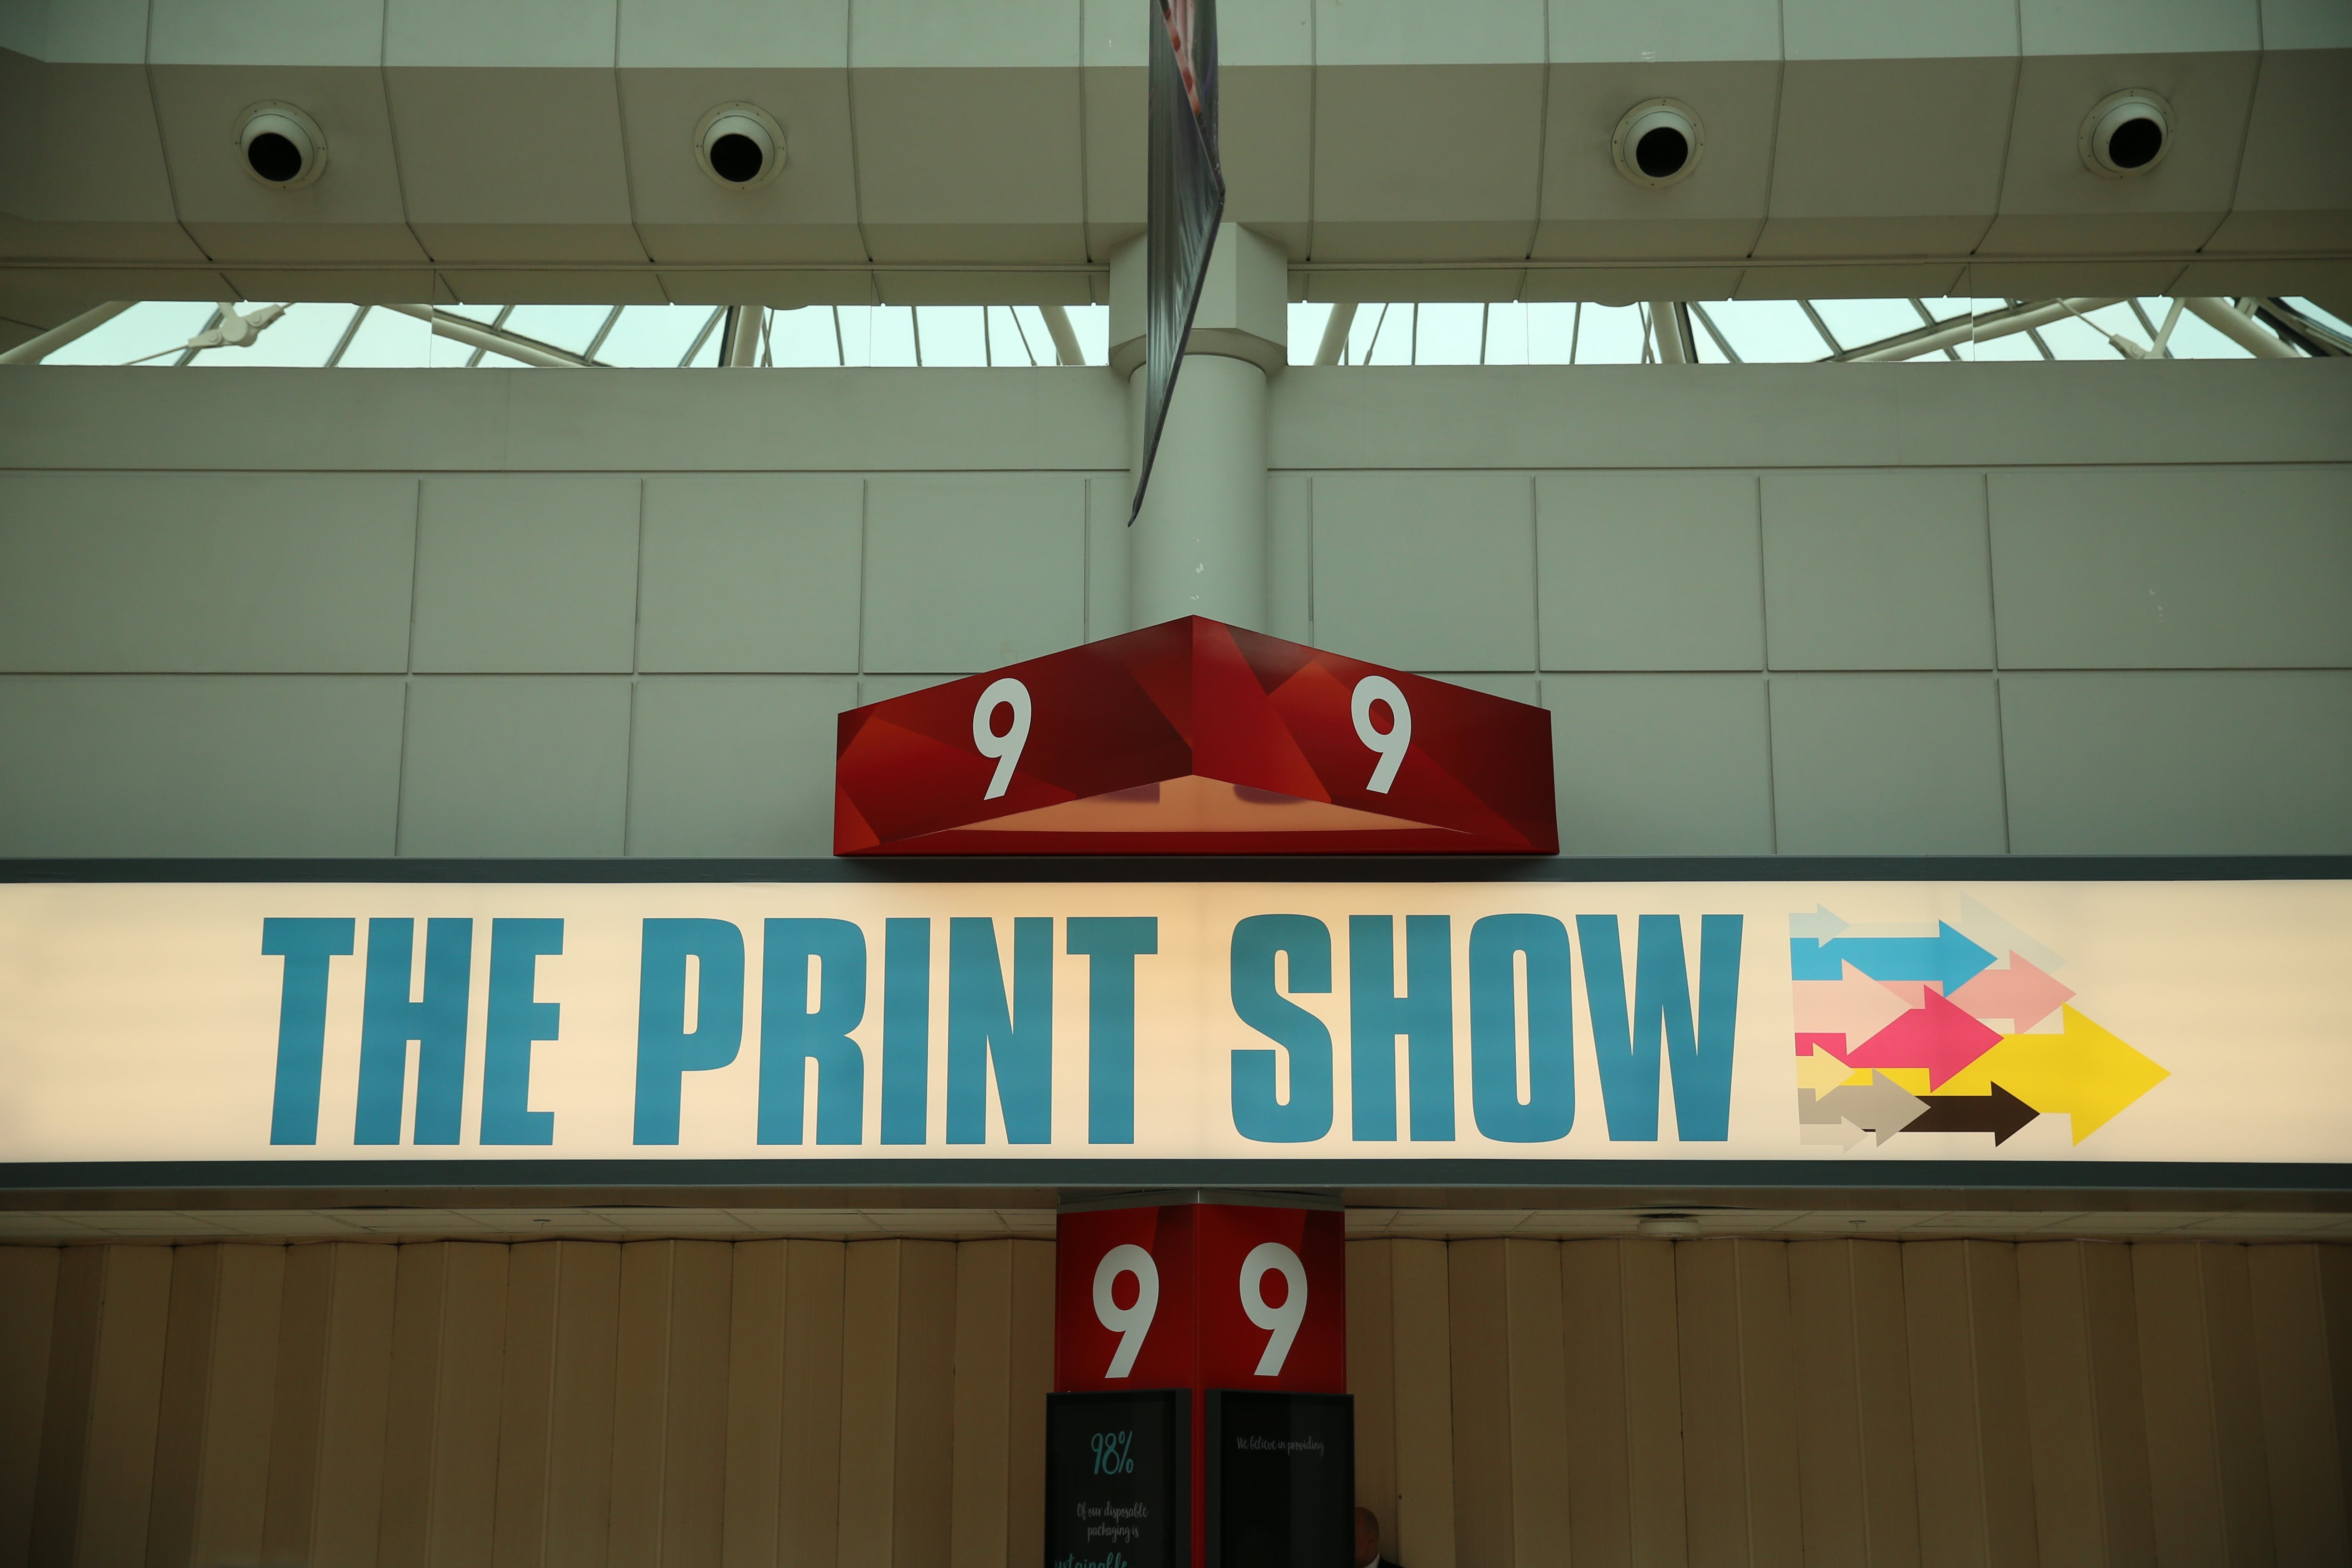 The Print Show Entrance